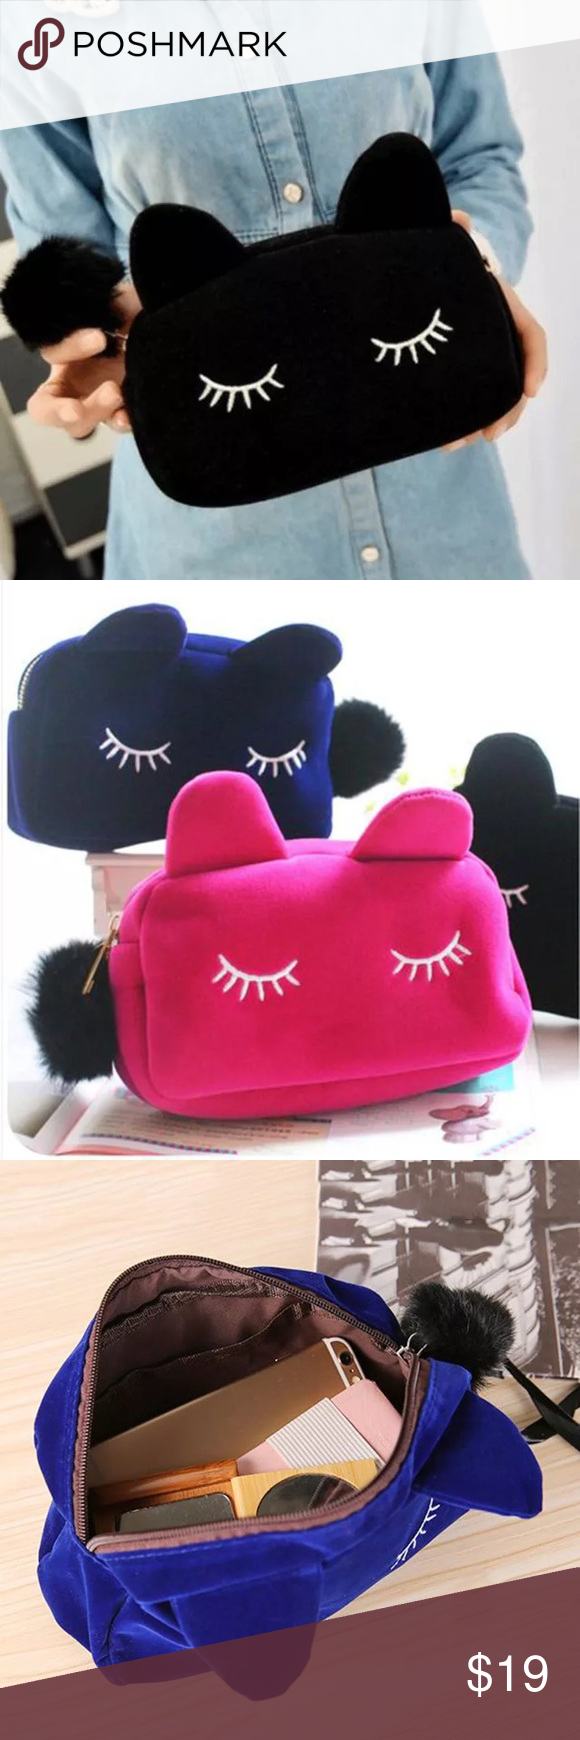 BOGO🔴 Plush Fun Cosmetic Cat Eyes Bag. Super cute! If you have the shirt this will definitely compliment it! Such a fun adorable item to add to your closet✨ Bags Cosmetic Bags & Cases